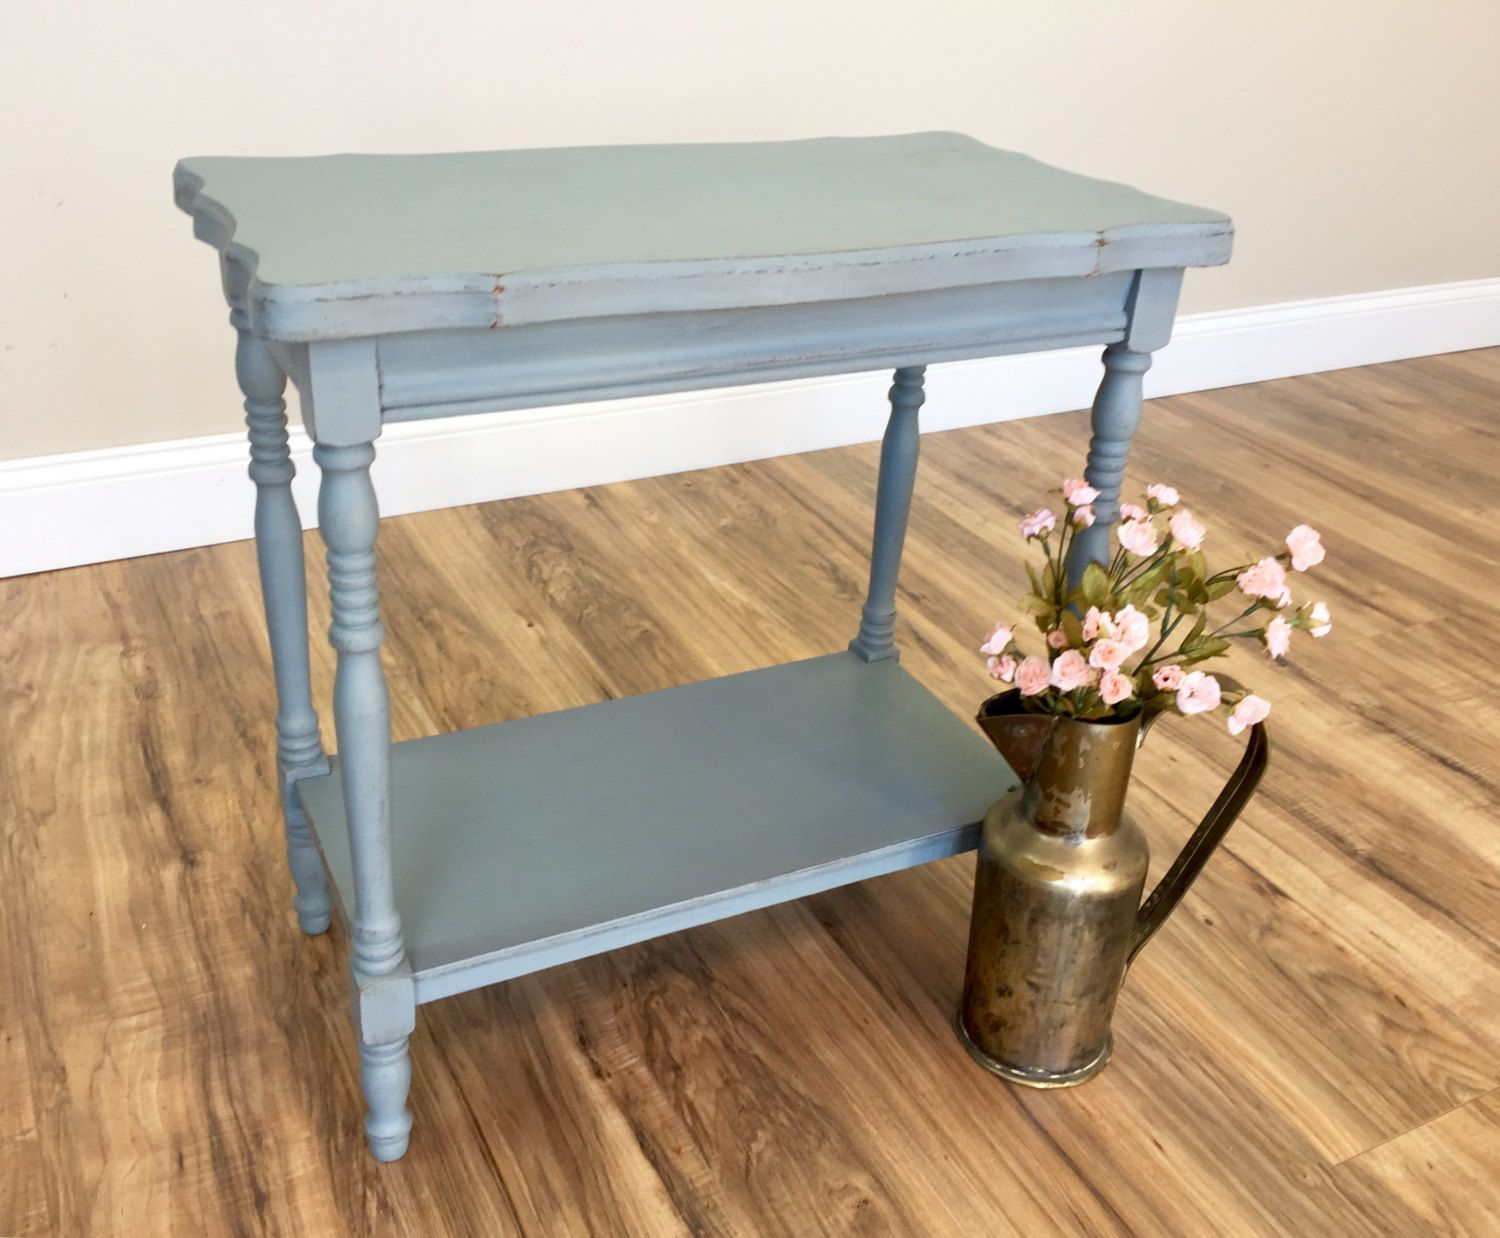 vintage end table blue side distressed furniture sofa small accent tables living room leather lounge chair circle dining set square metal desk legs attic heirlooms ikea tall wine